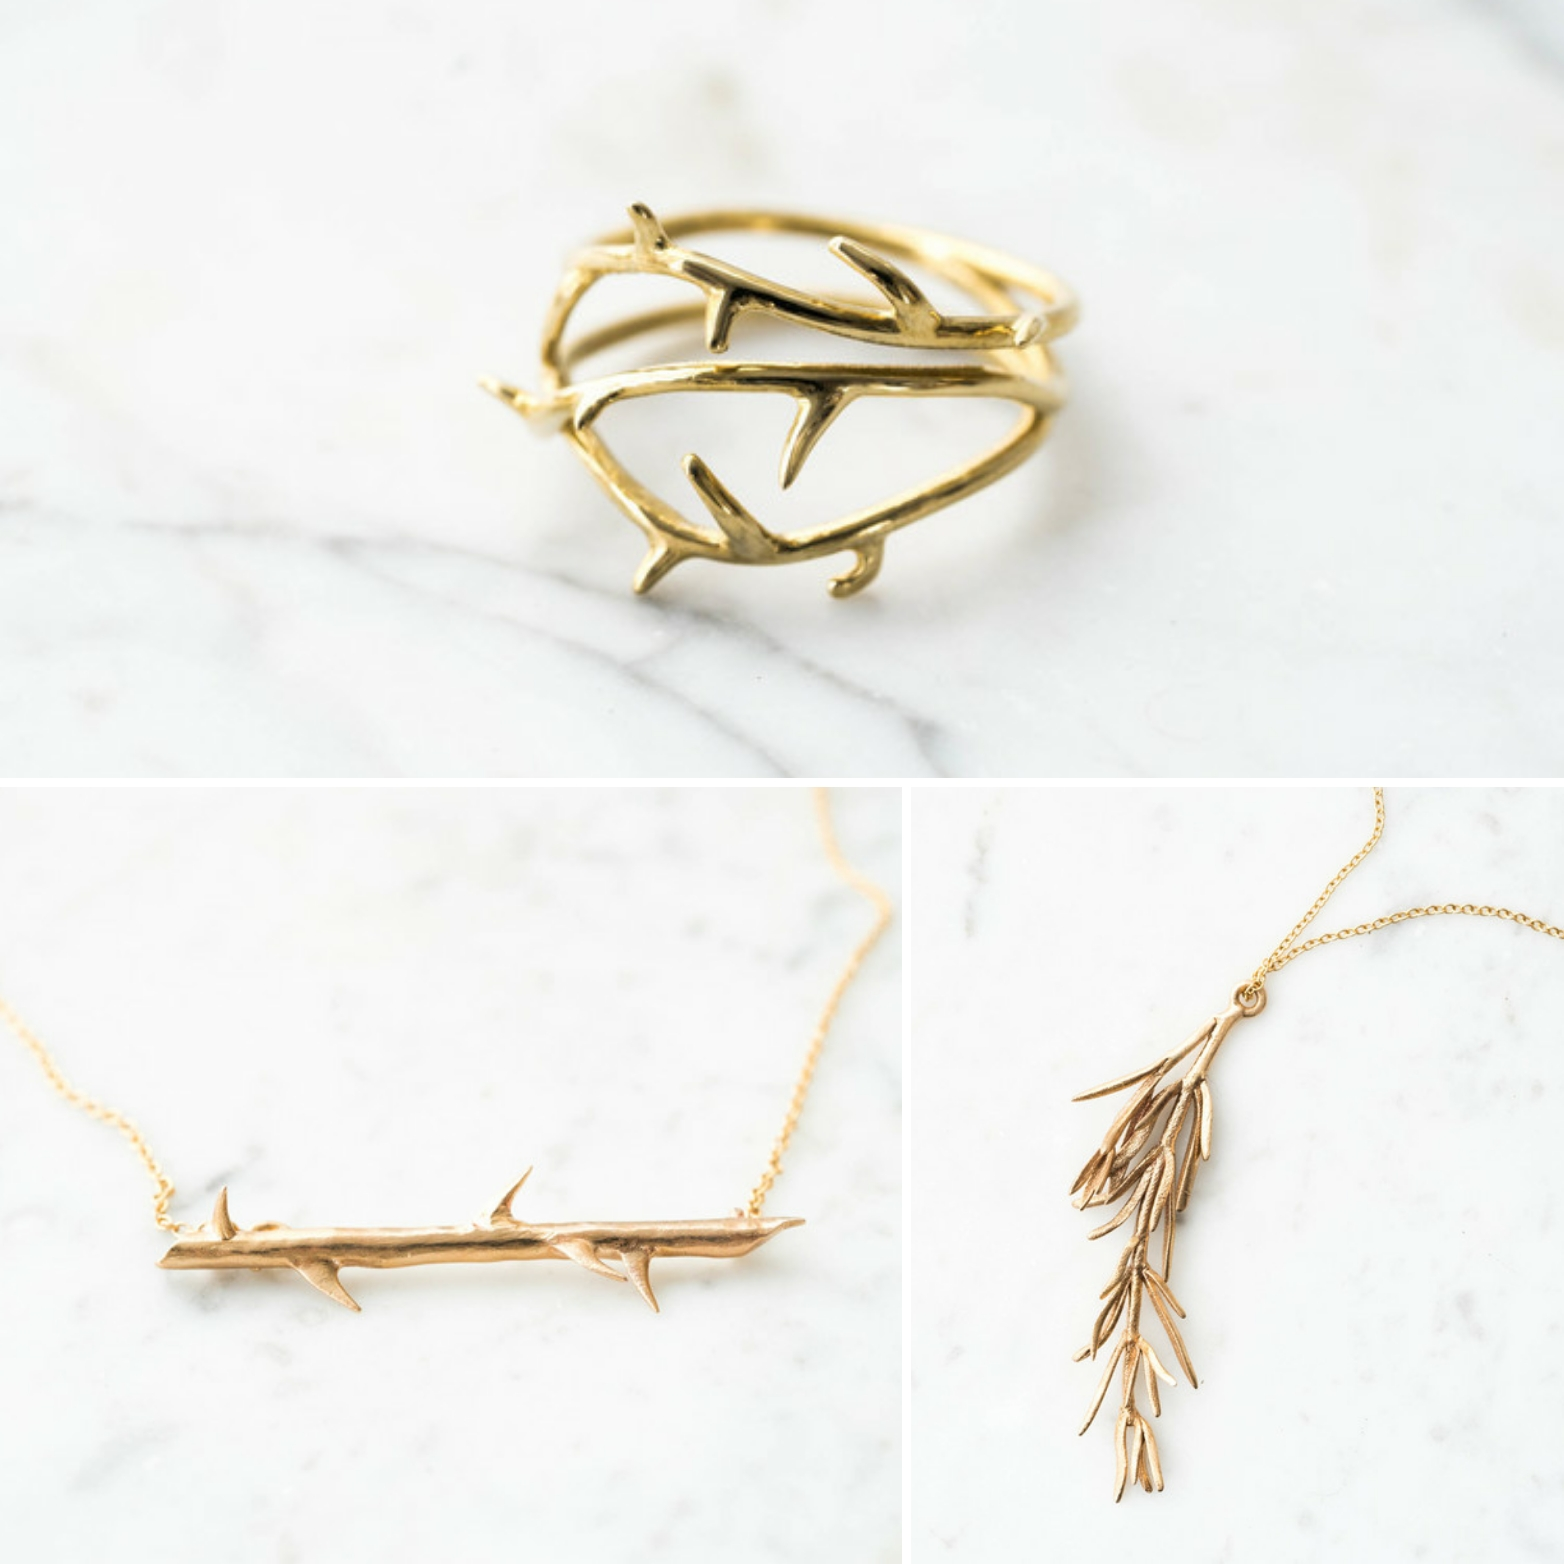 thorn Ring , down: thorn bar necklace and rosemary pendant